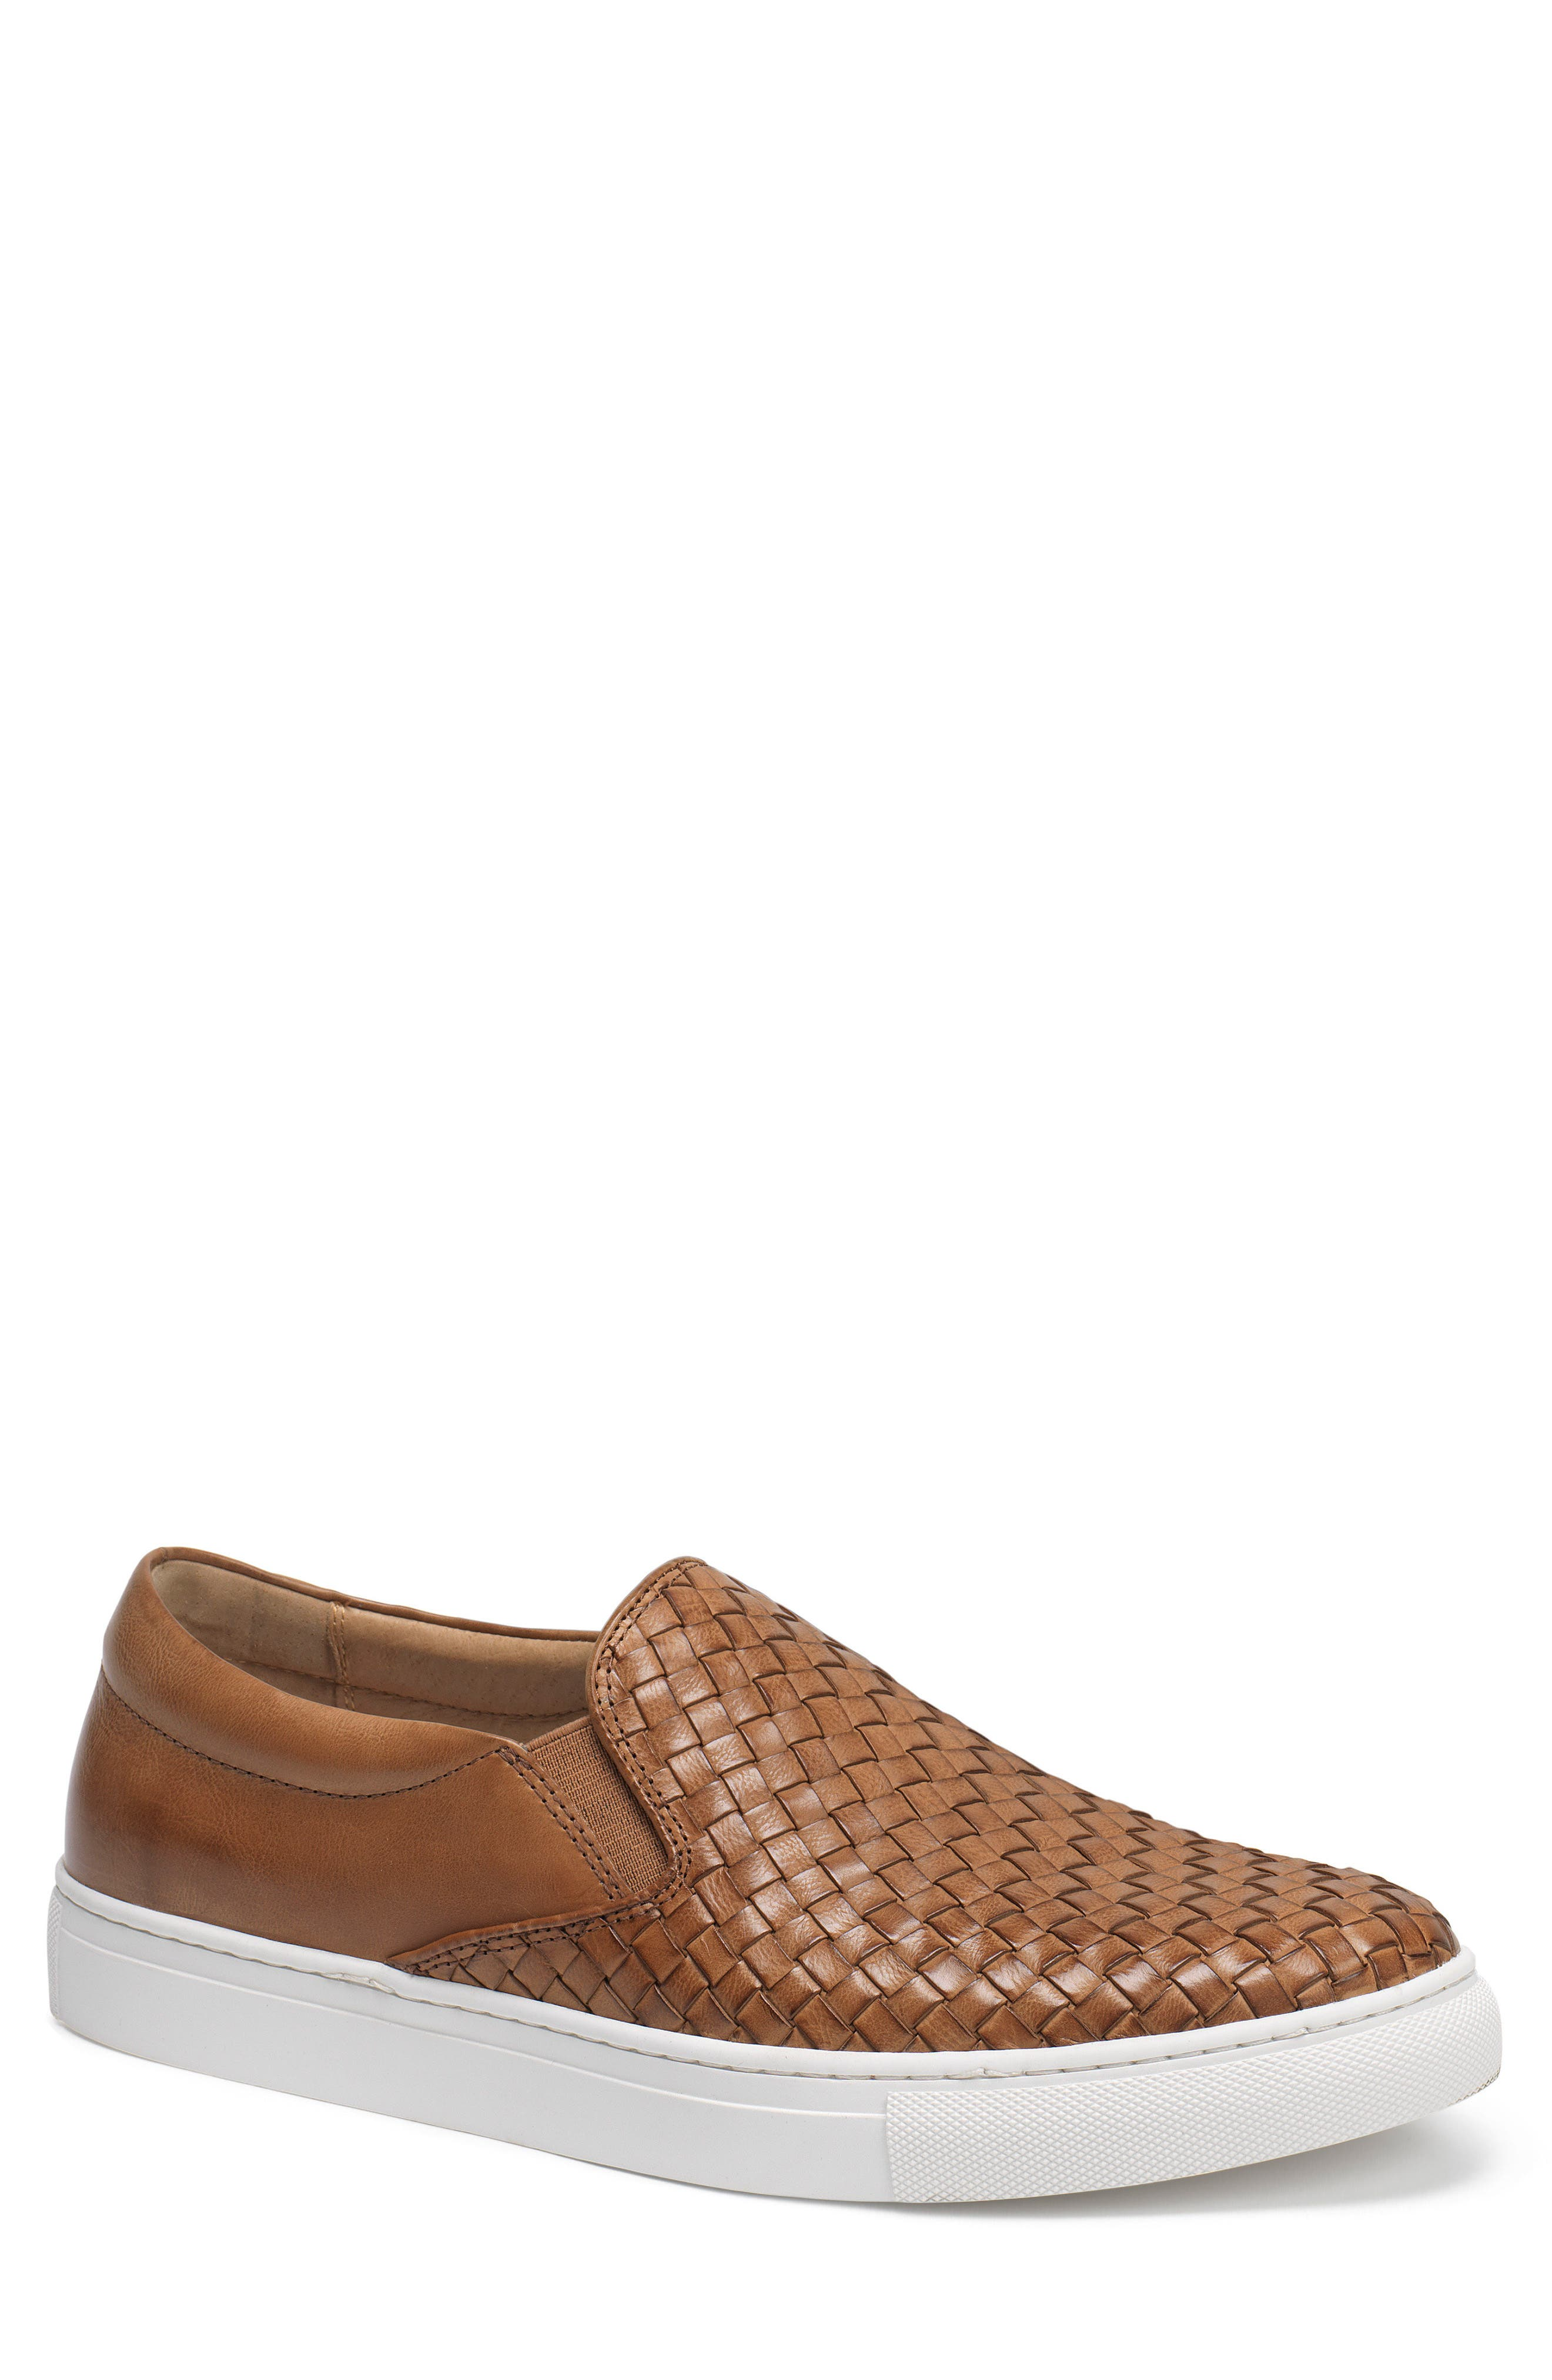 Alex Woven Slip-On Sneaker,                             Main thumbnail 1, color,                             Tan Leather